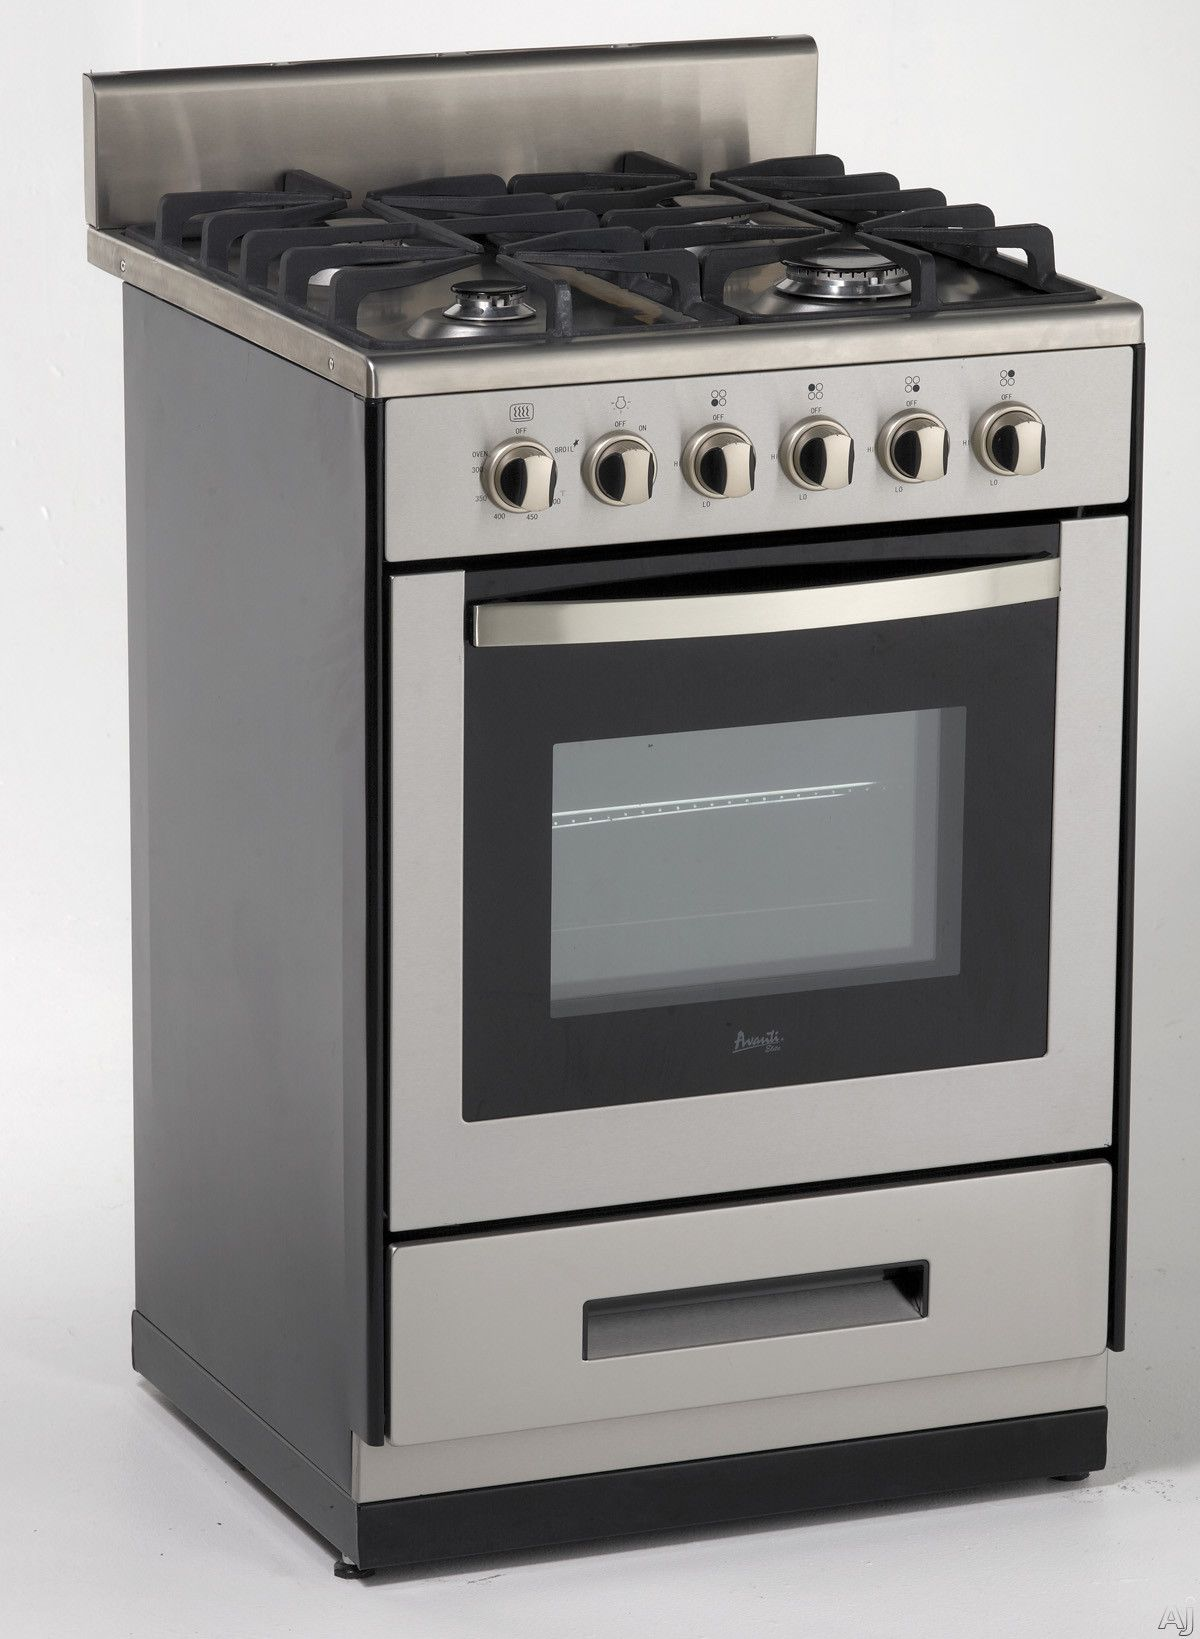 Avanti Dg2450ss1 24 Freestanding Gas Range With 4 Sealed Burners Cast Iron Grates Simmer Burner Manual Clean Oven Roll Oven Cleaning Oven Racks Gas Range